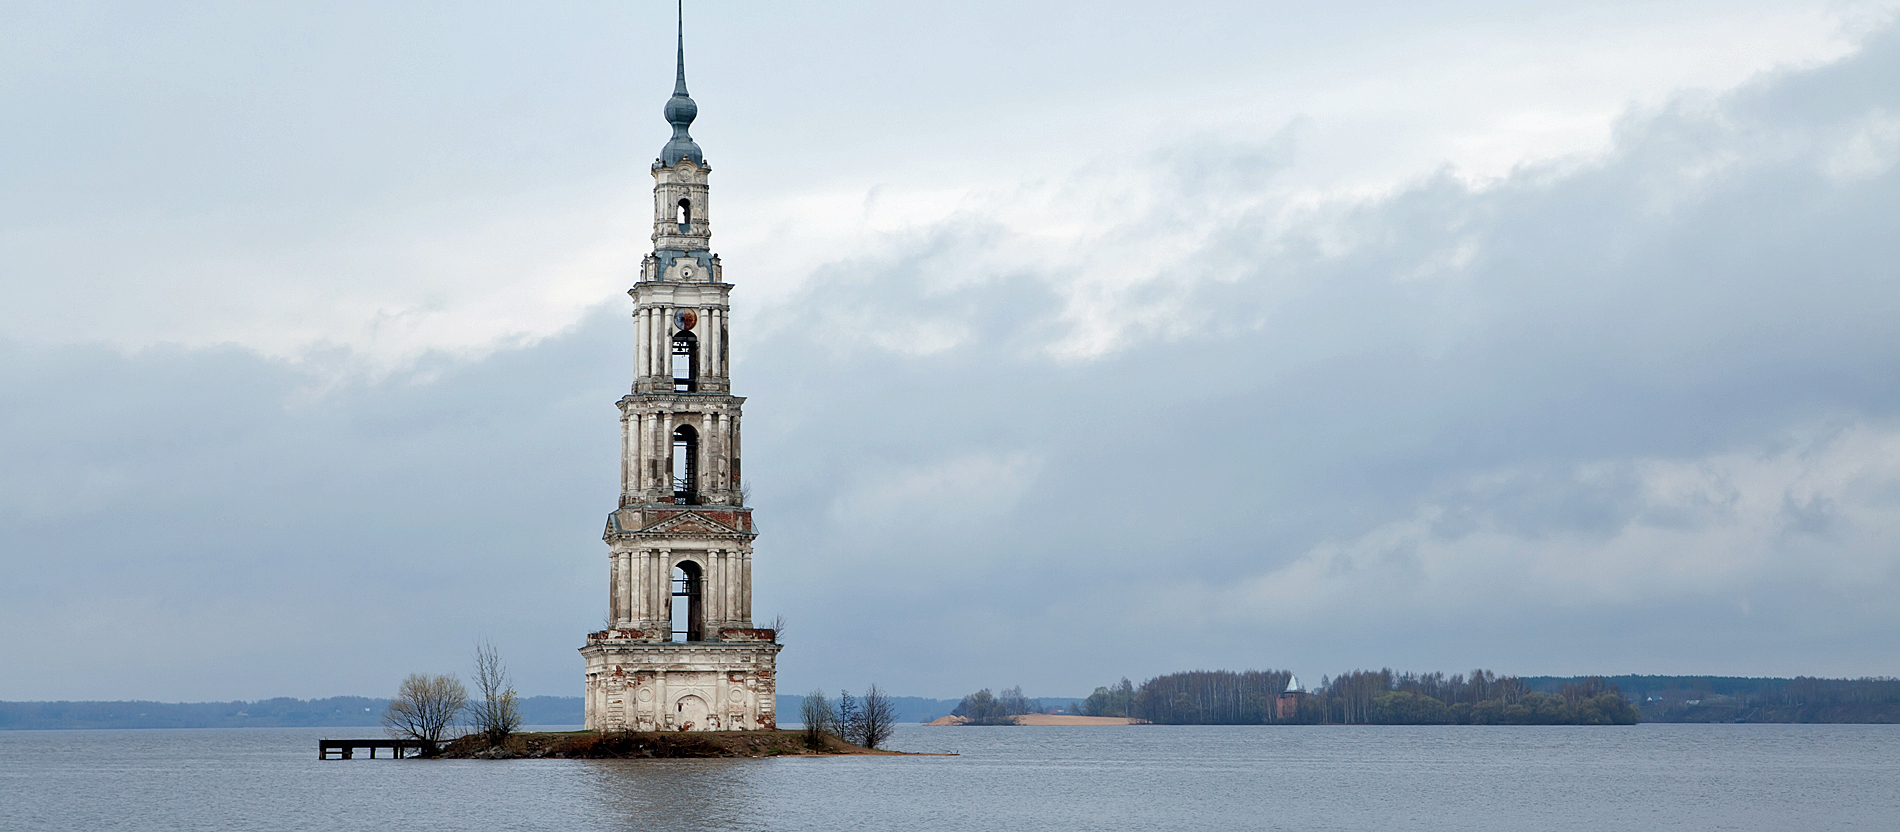 In 1940s the monastery and most of the old Kalyazin town (Russia) were flooded during the construction of the Uglich Reservoir